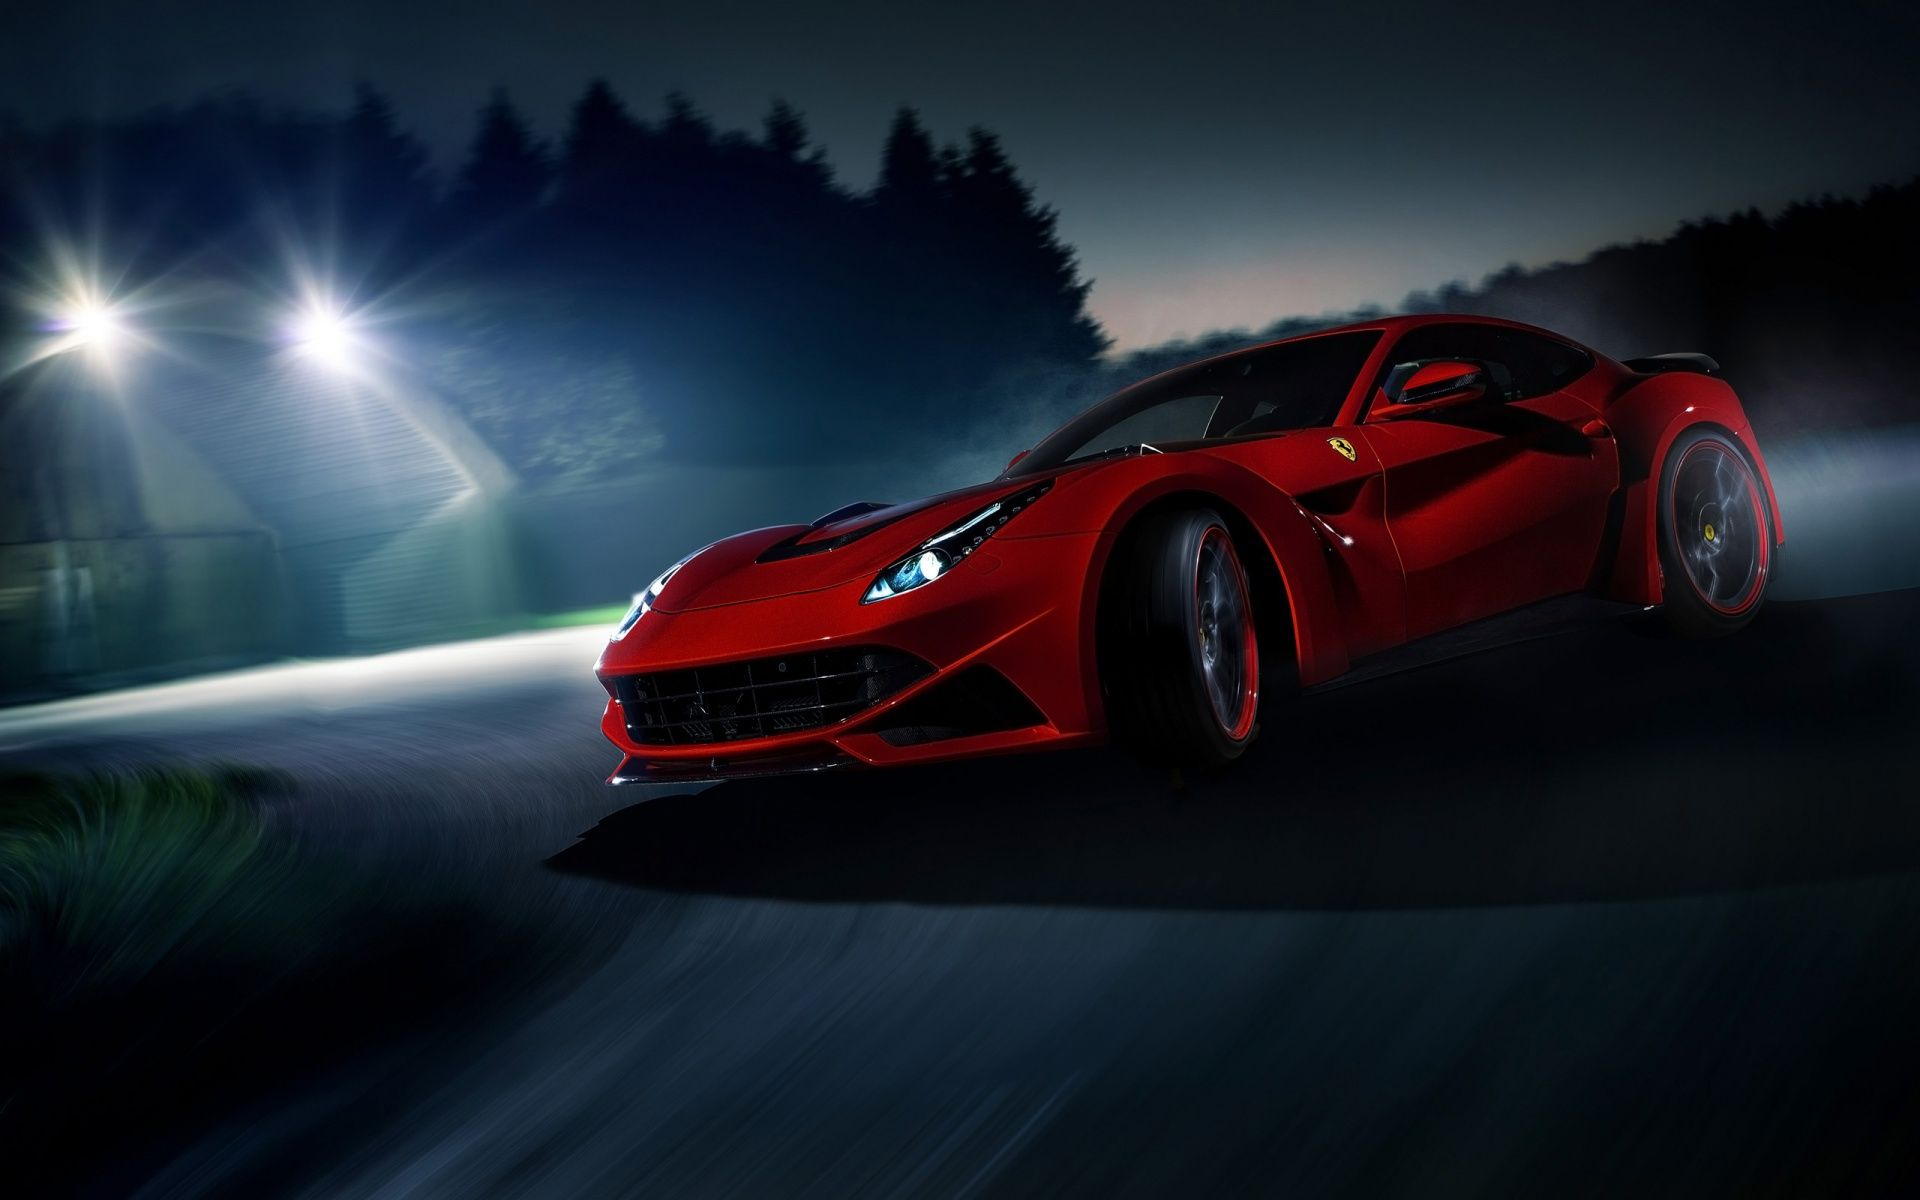 Best Hd Wallpapers Windows 8 1 Wallpapersafari Ferrari F12berlinetta Fondos De Pantalla De Coches Ferrari